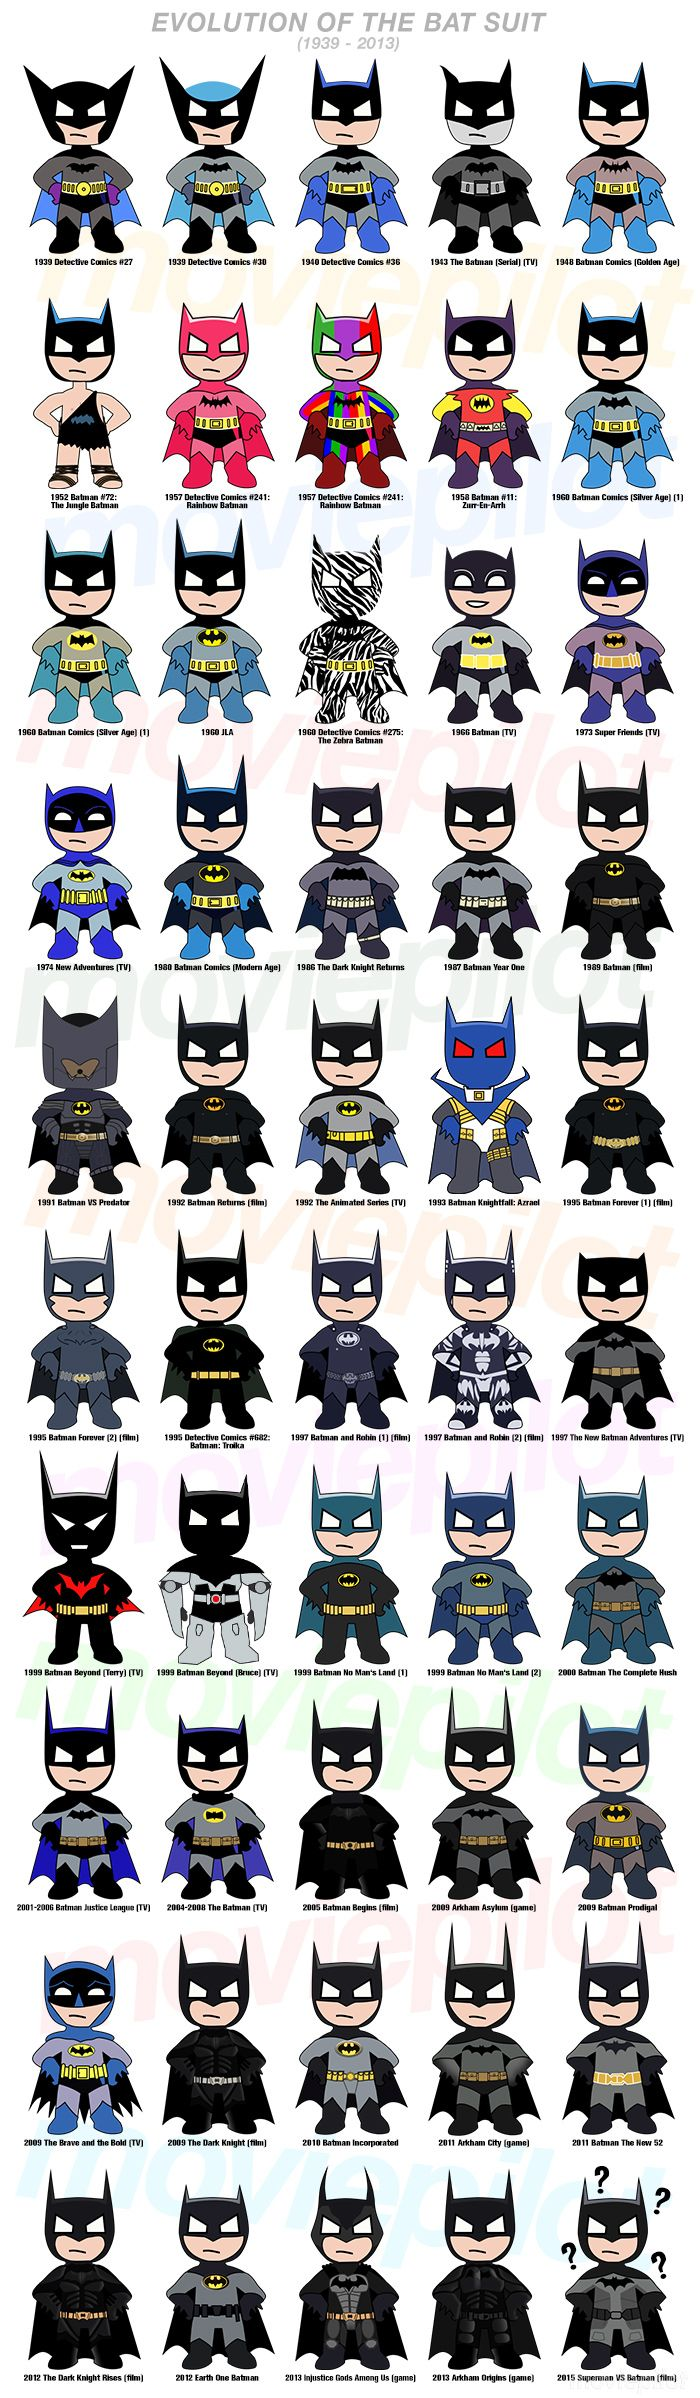 INFOGRAPHIC: The Evolution of the Batsuit | Moviepilot